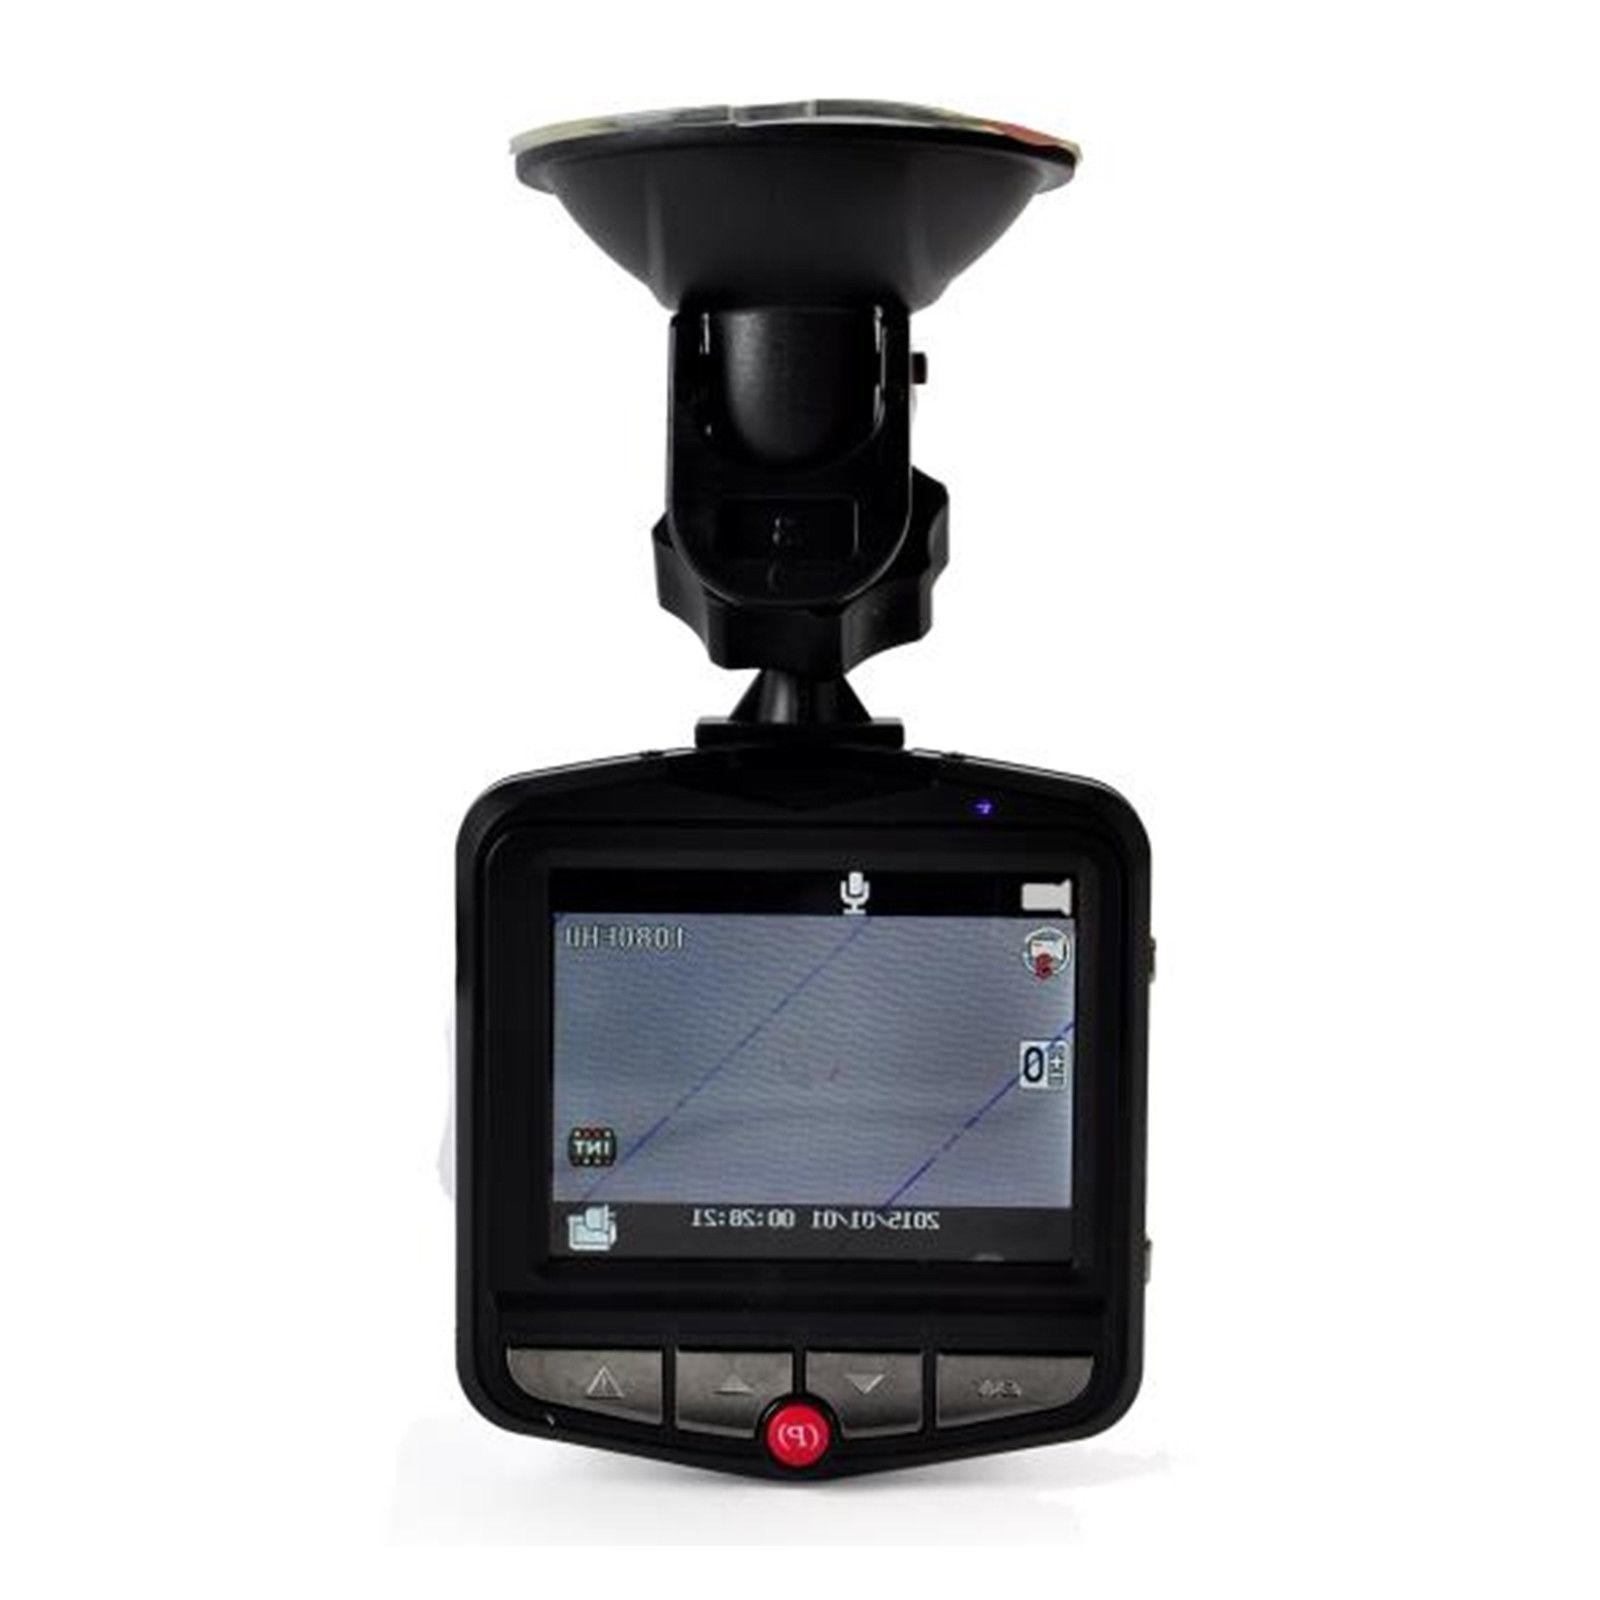 hd dash cam hi res 1080p dvr